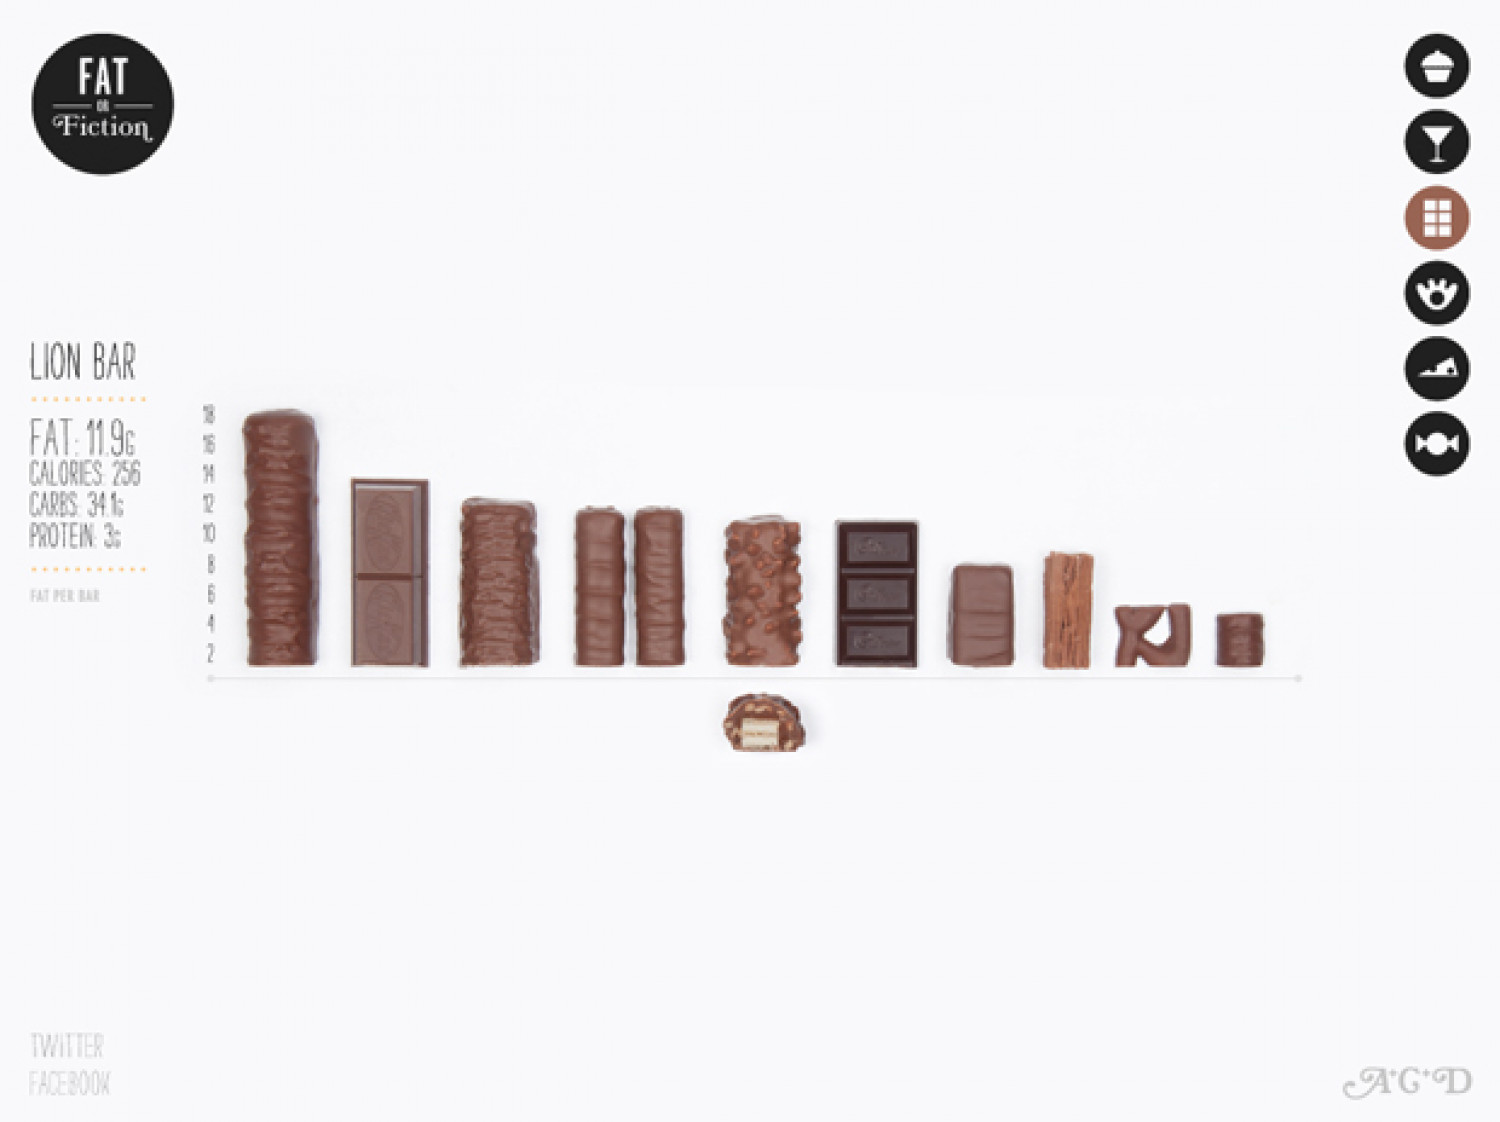 Fat or Fiction - Chocolate Infographic